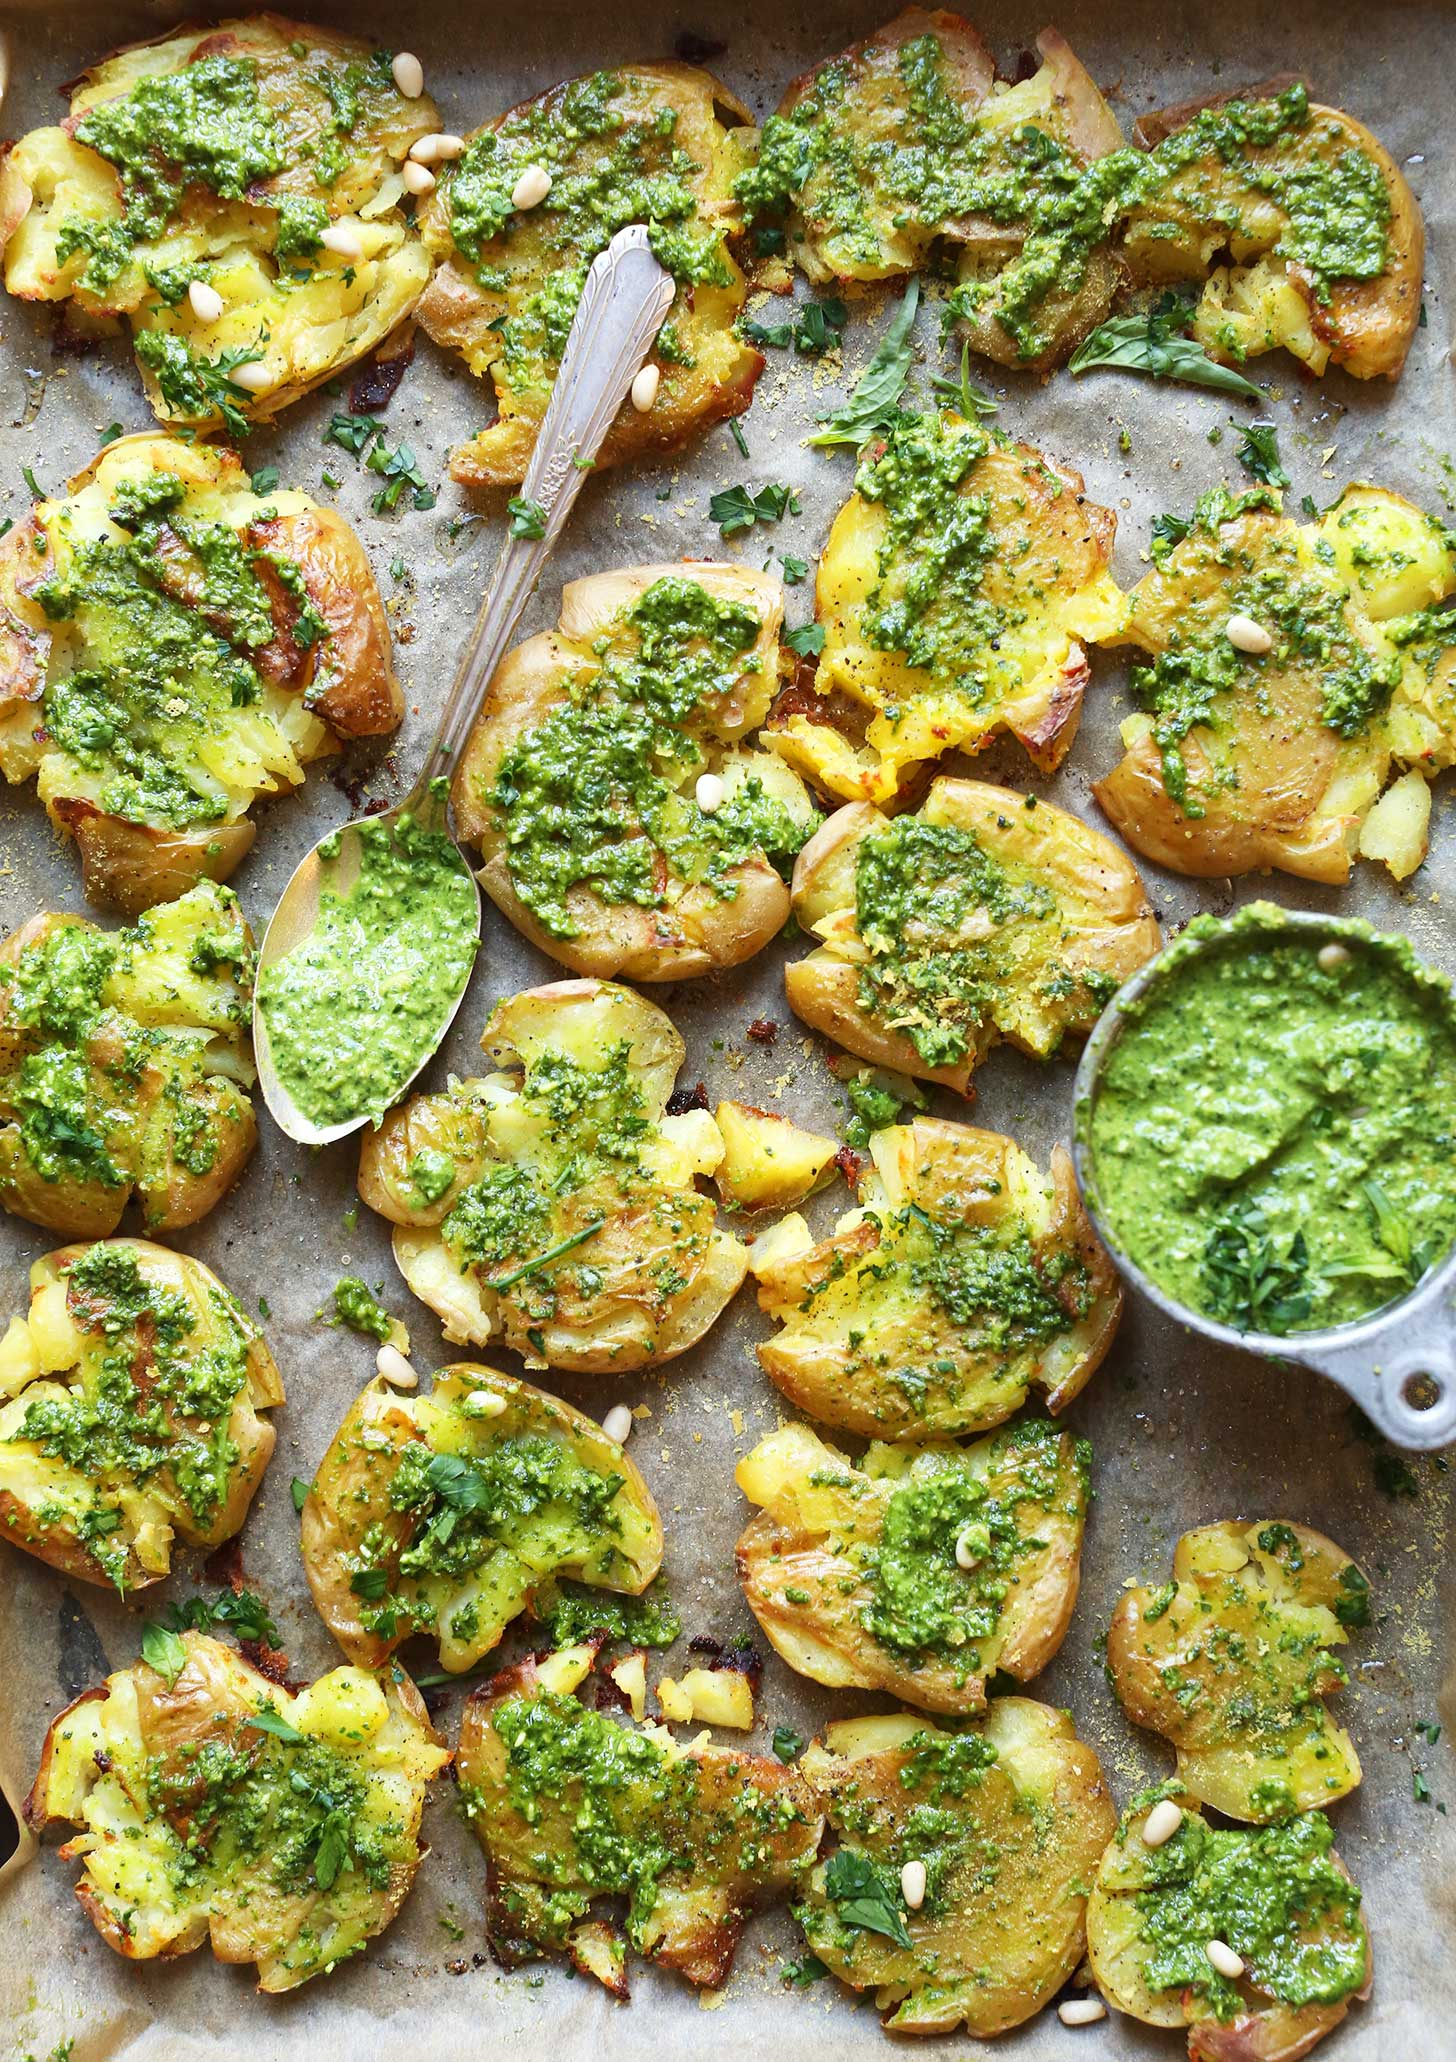 Parchment-lined baking sheet full of Smashed Potatoes smothered with vegan Garlic Herb Pesto